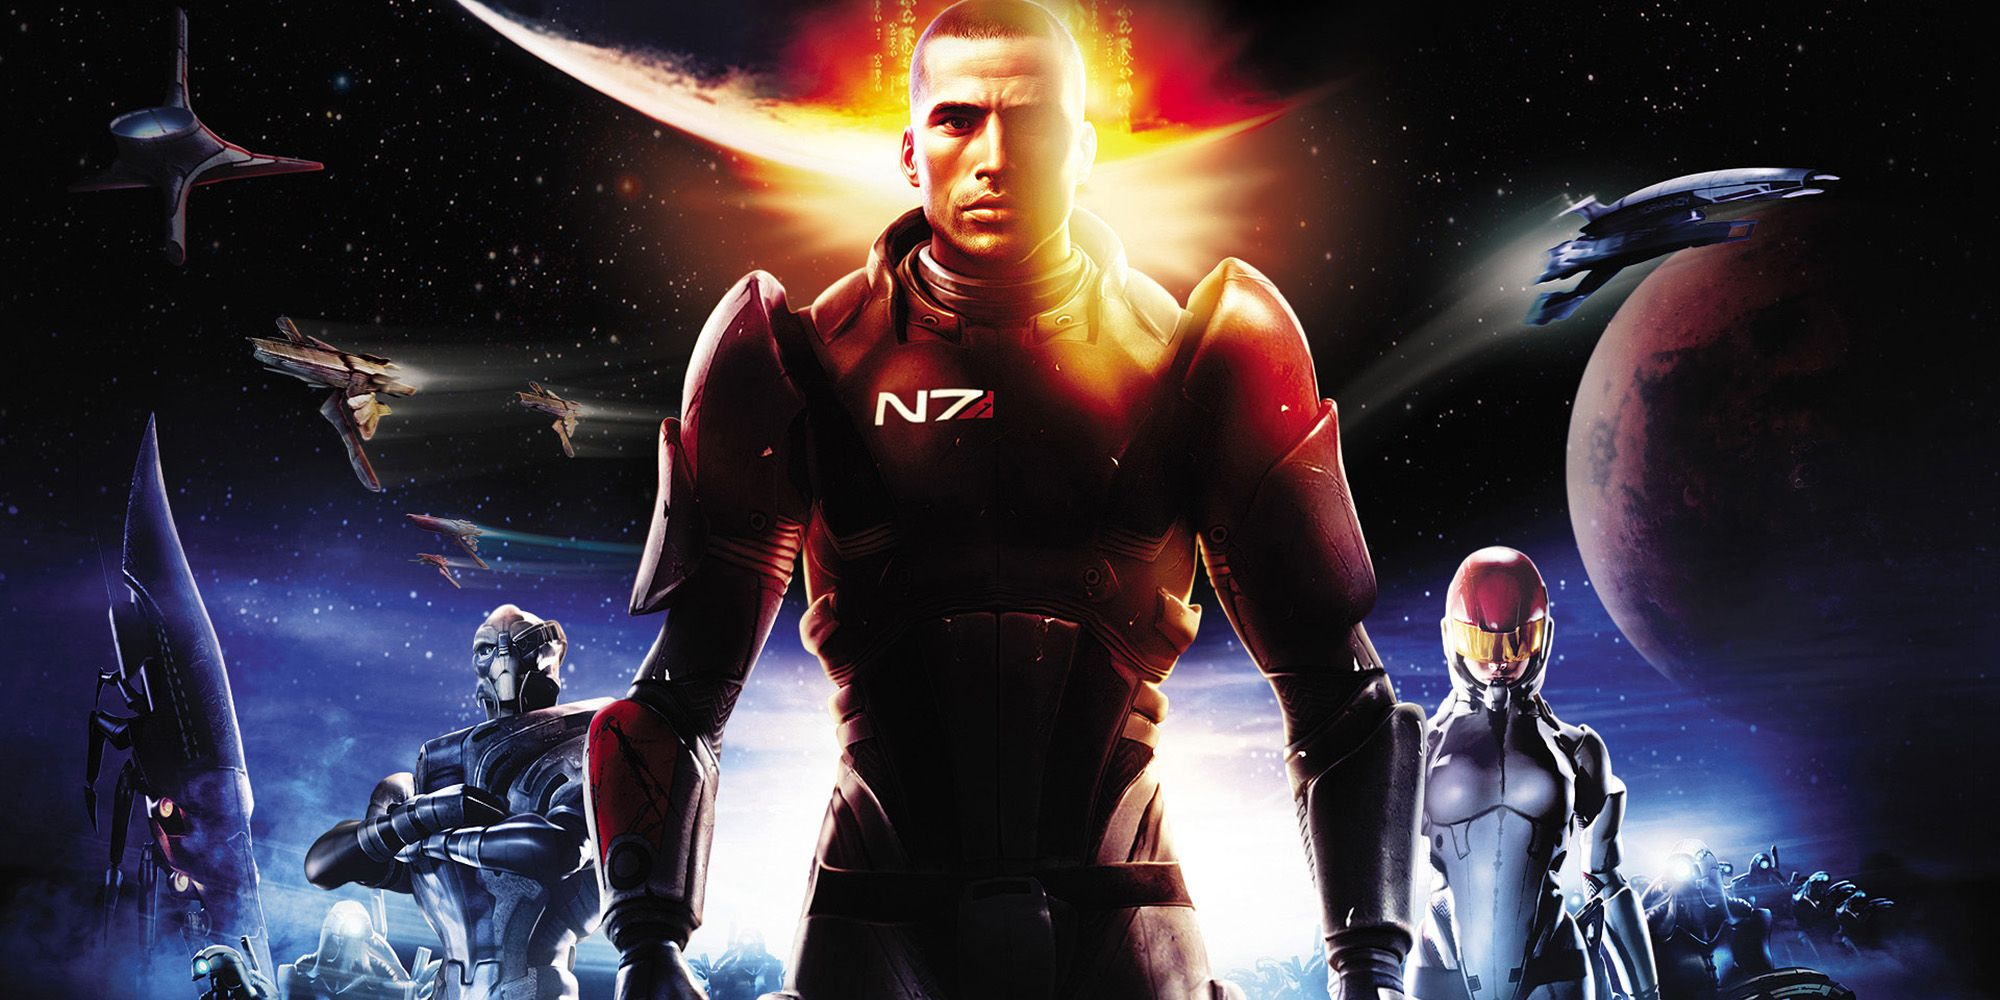 Mass Effect: Why The Next Game Should Explore The First Contact War